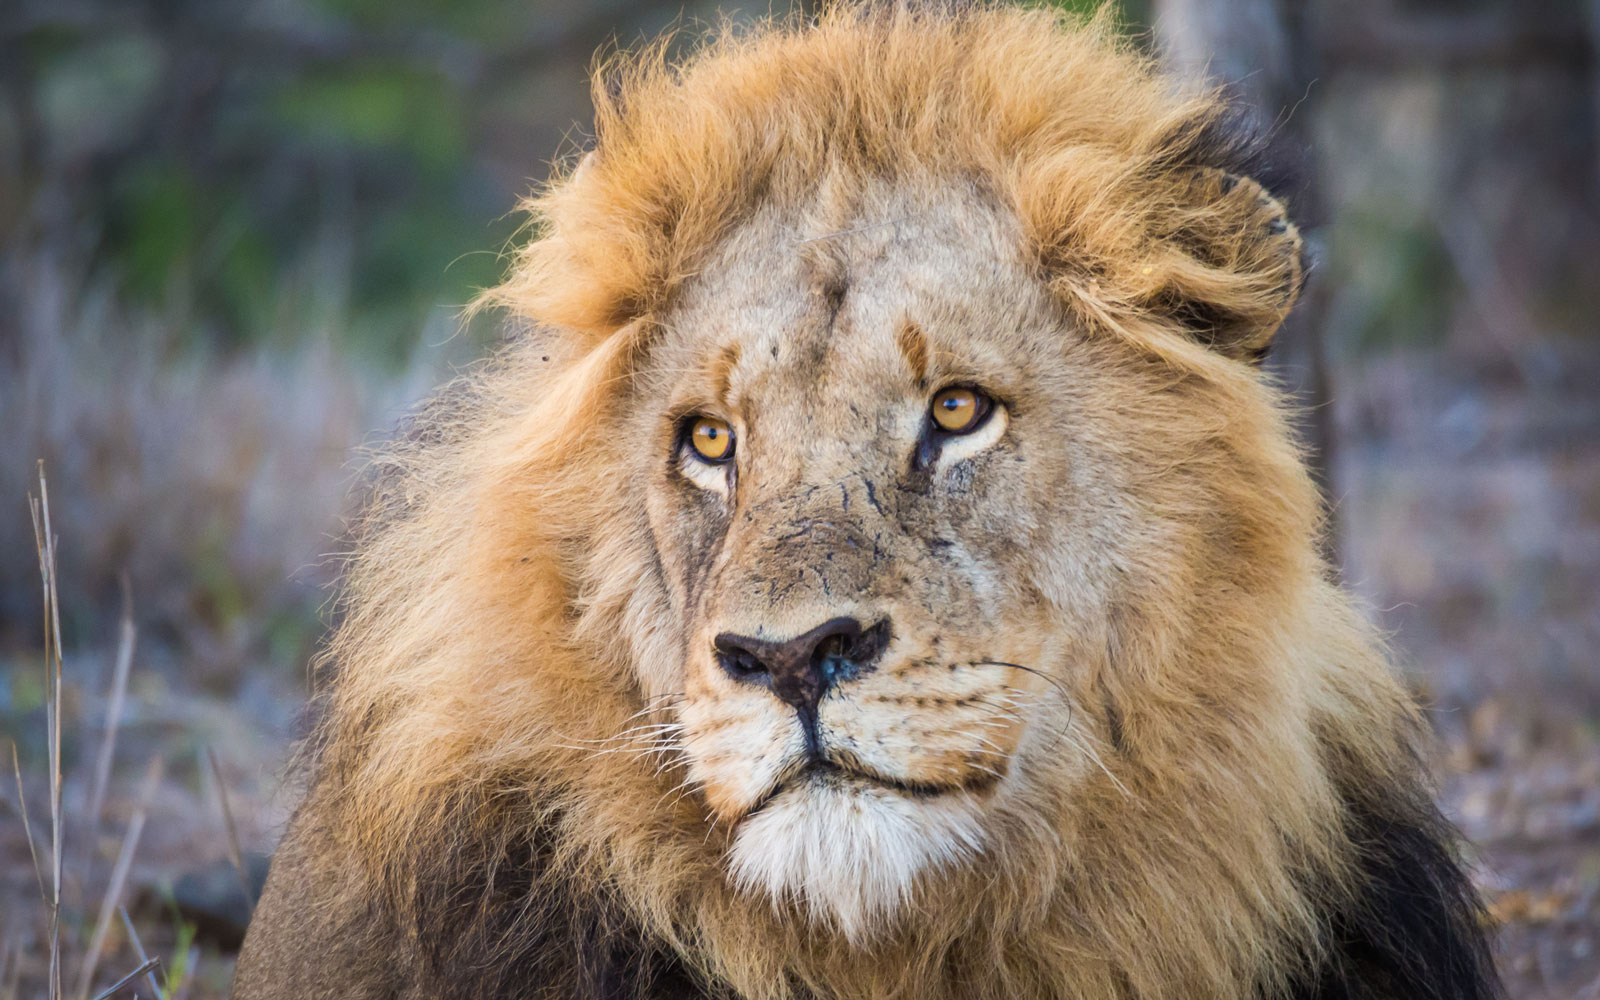 Beloved Lion Keeper Mauled to Death by His Own Lion at South African Safari Lodge